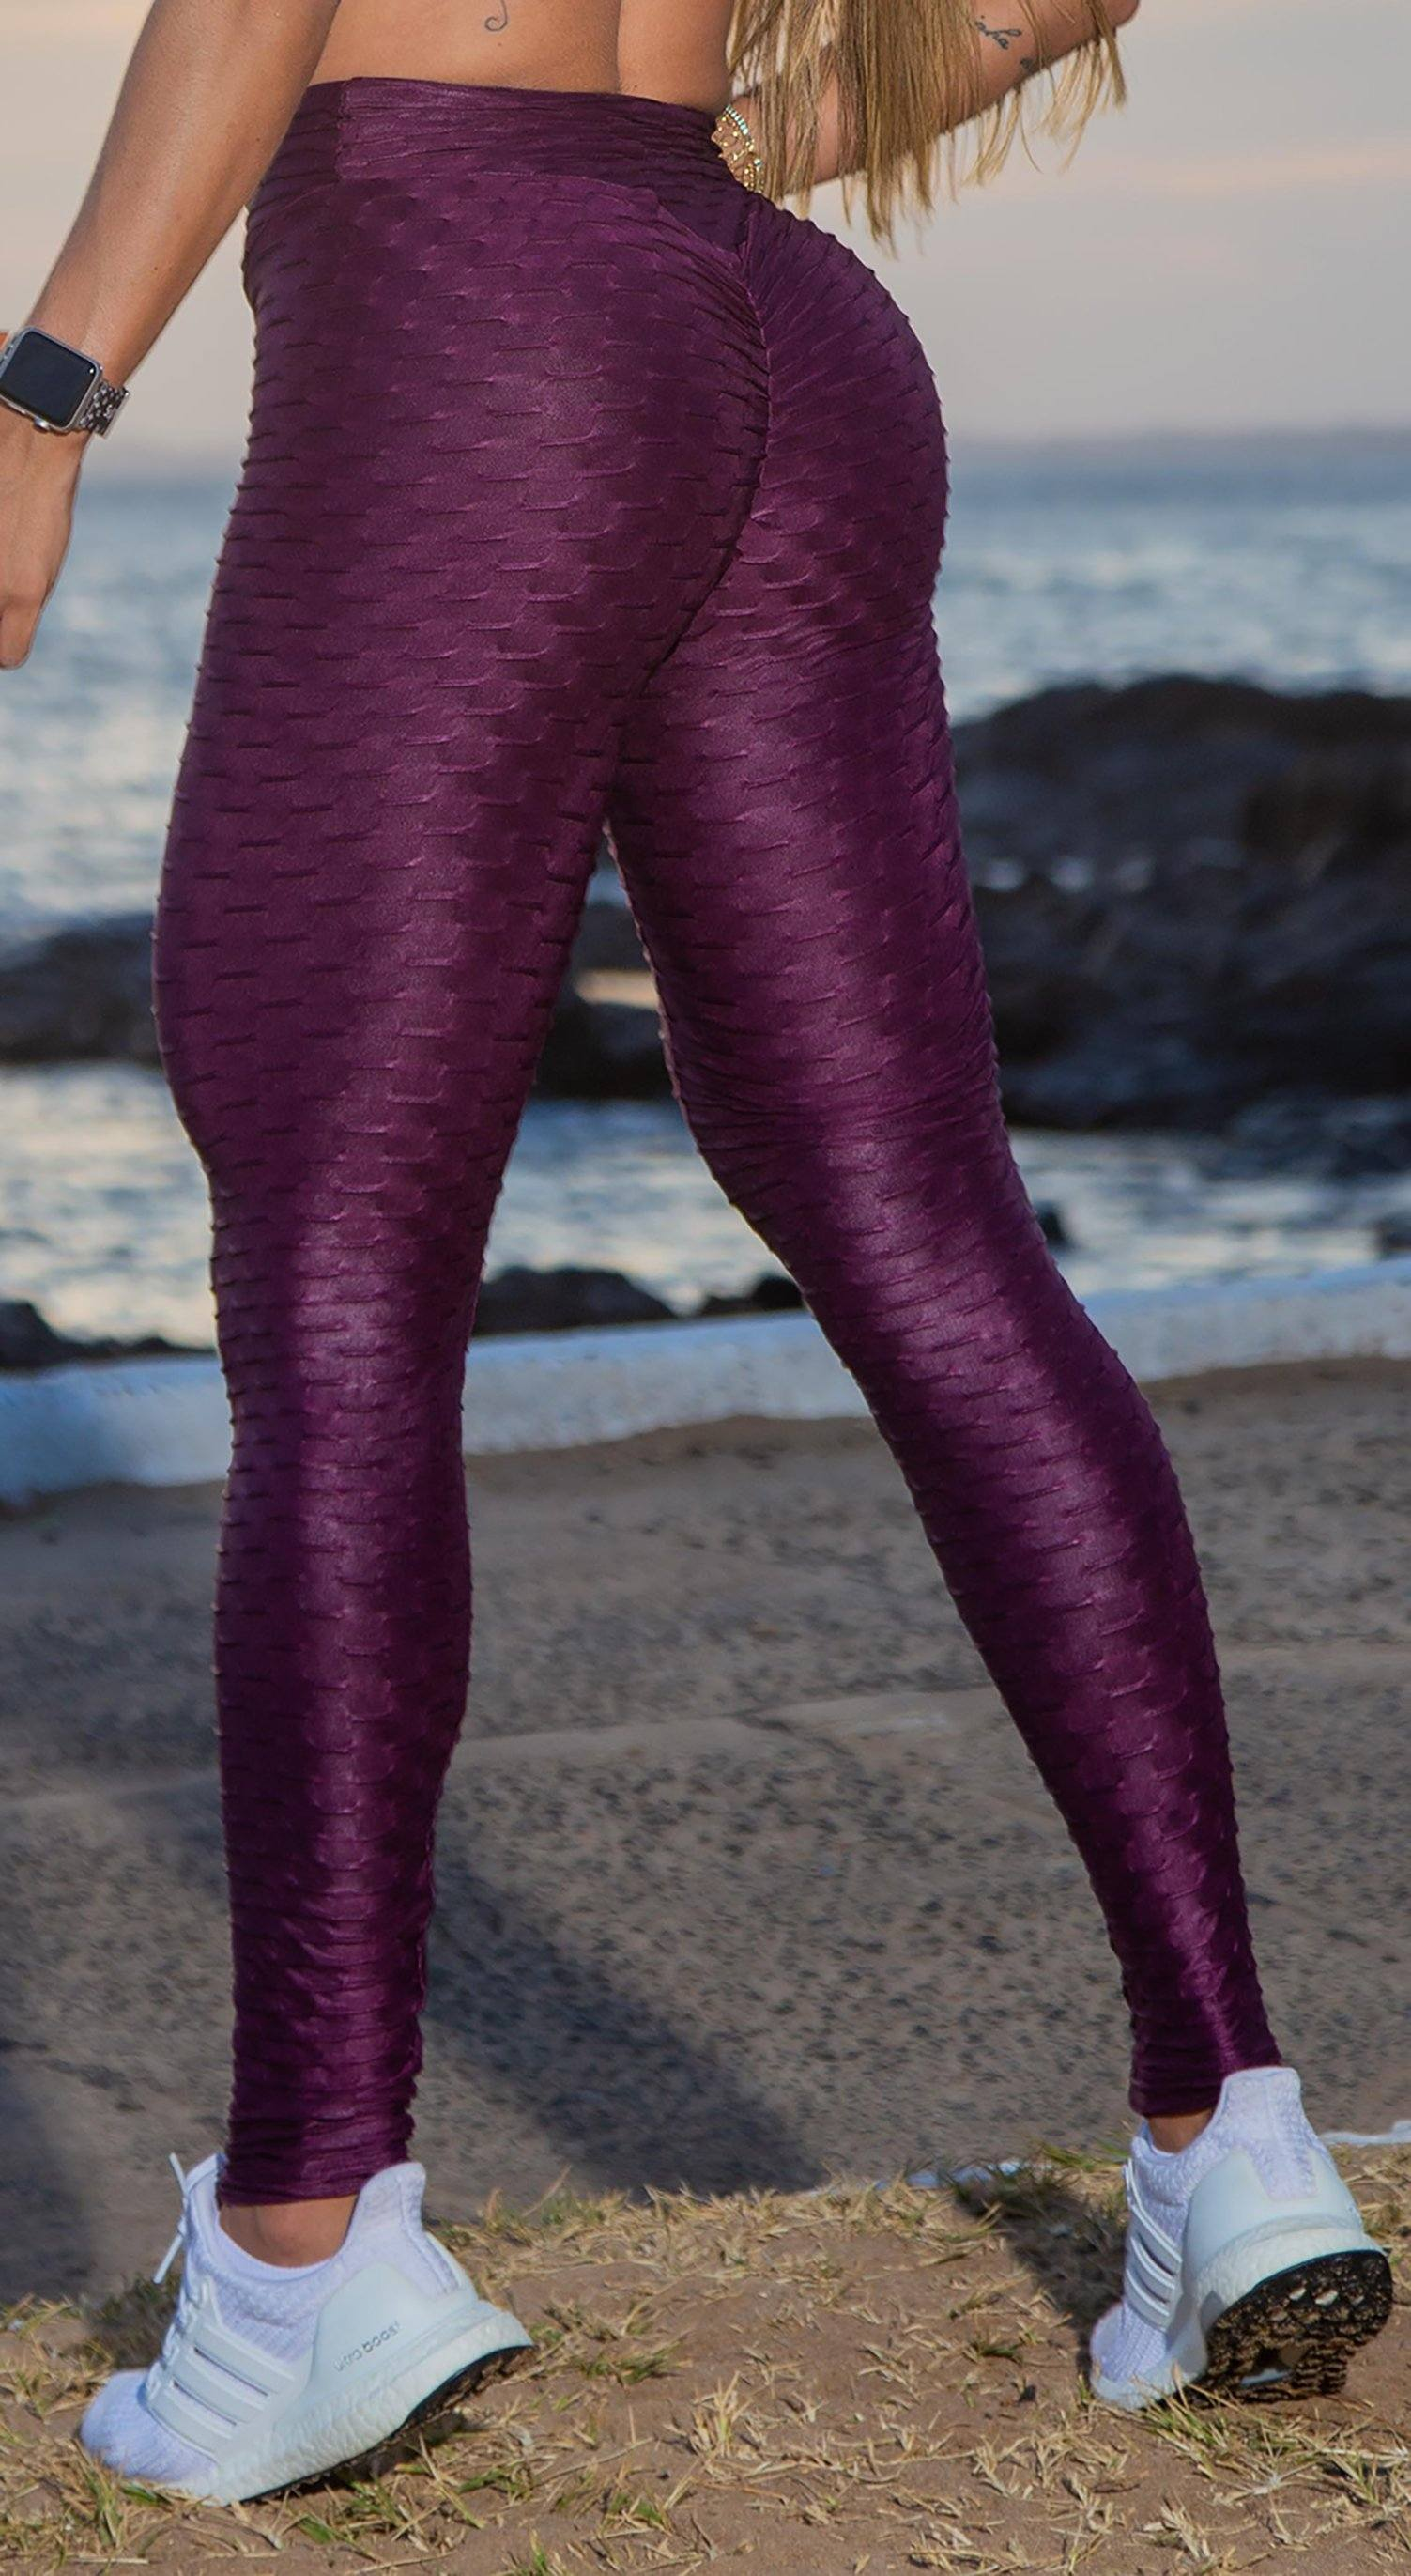 Brazilian Legging - High Waist Anti Cellulite Honeycomb Textured Scrunch Booty Shiny Purple